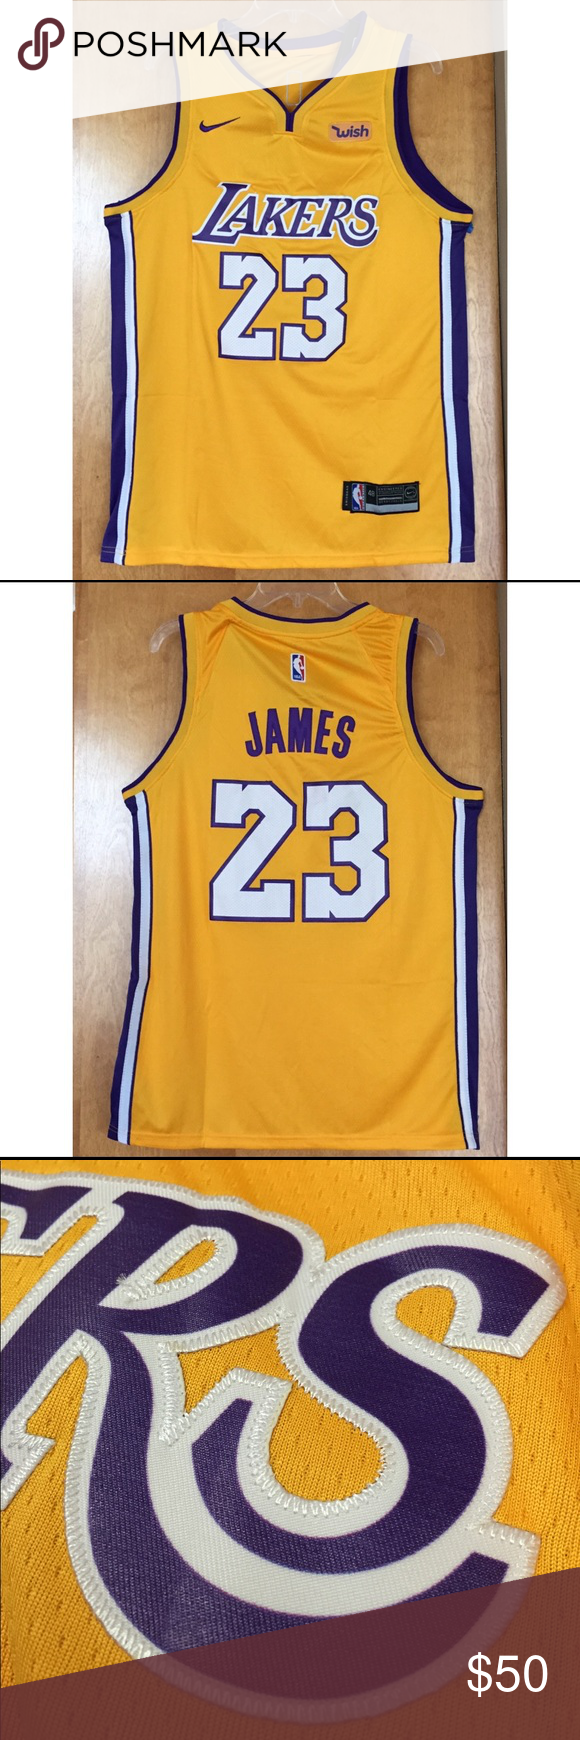 895ecfd562b 100% STITCHED LEBRON JAMES LAKERS GOLD JERSEY 100% stitches LeBron James  Los Angeles Lakers jersey. Ready to ship immediately after purchase.